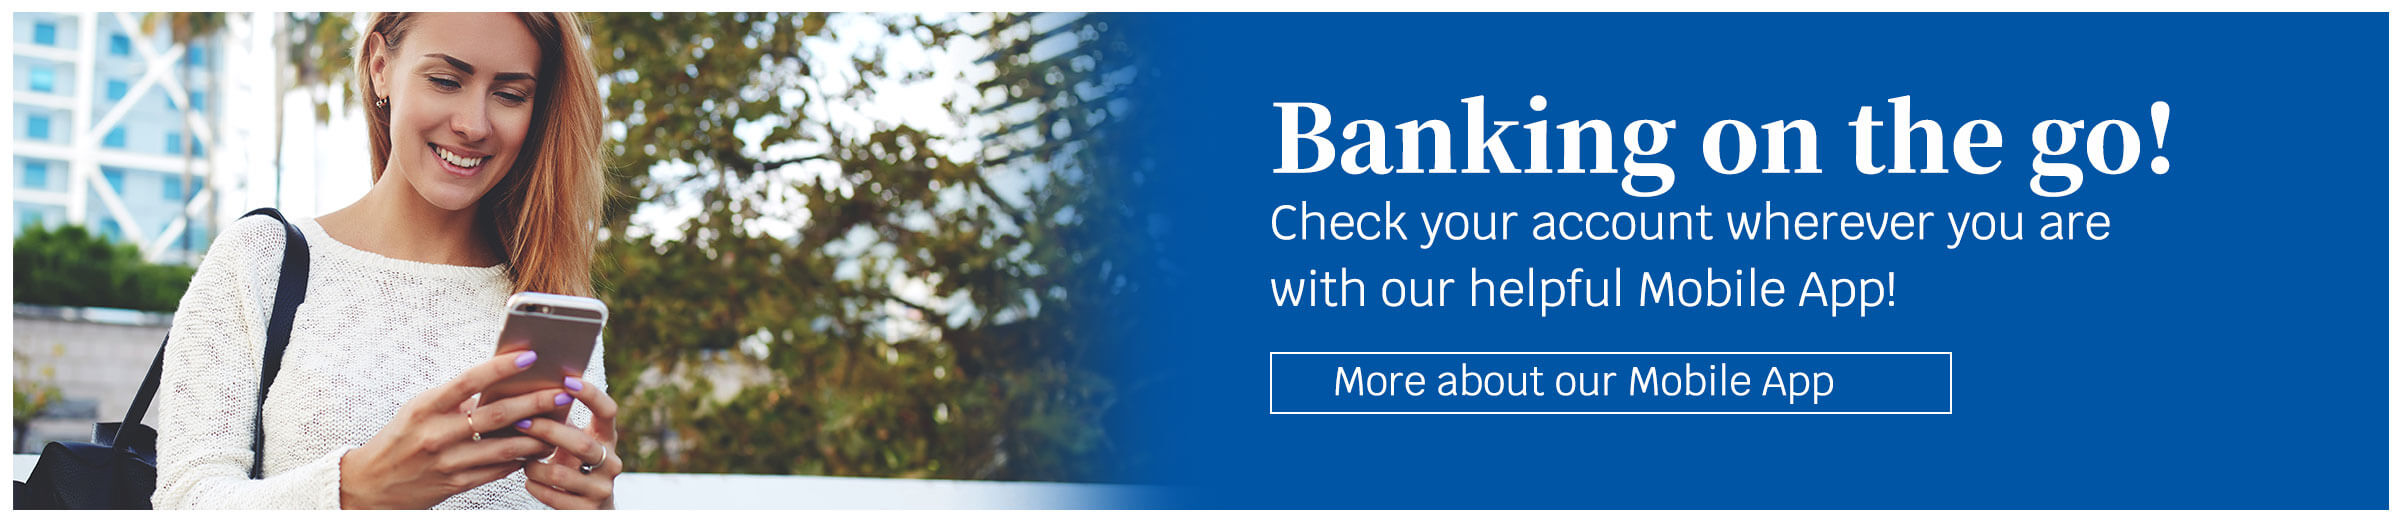 Banking on the go! Check your account wherever you are with our helpful Mobile App! More about our Mobile App